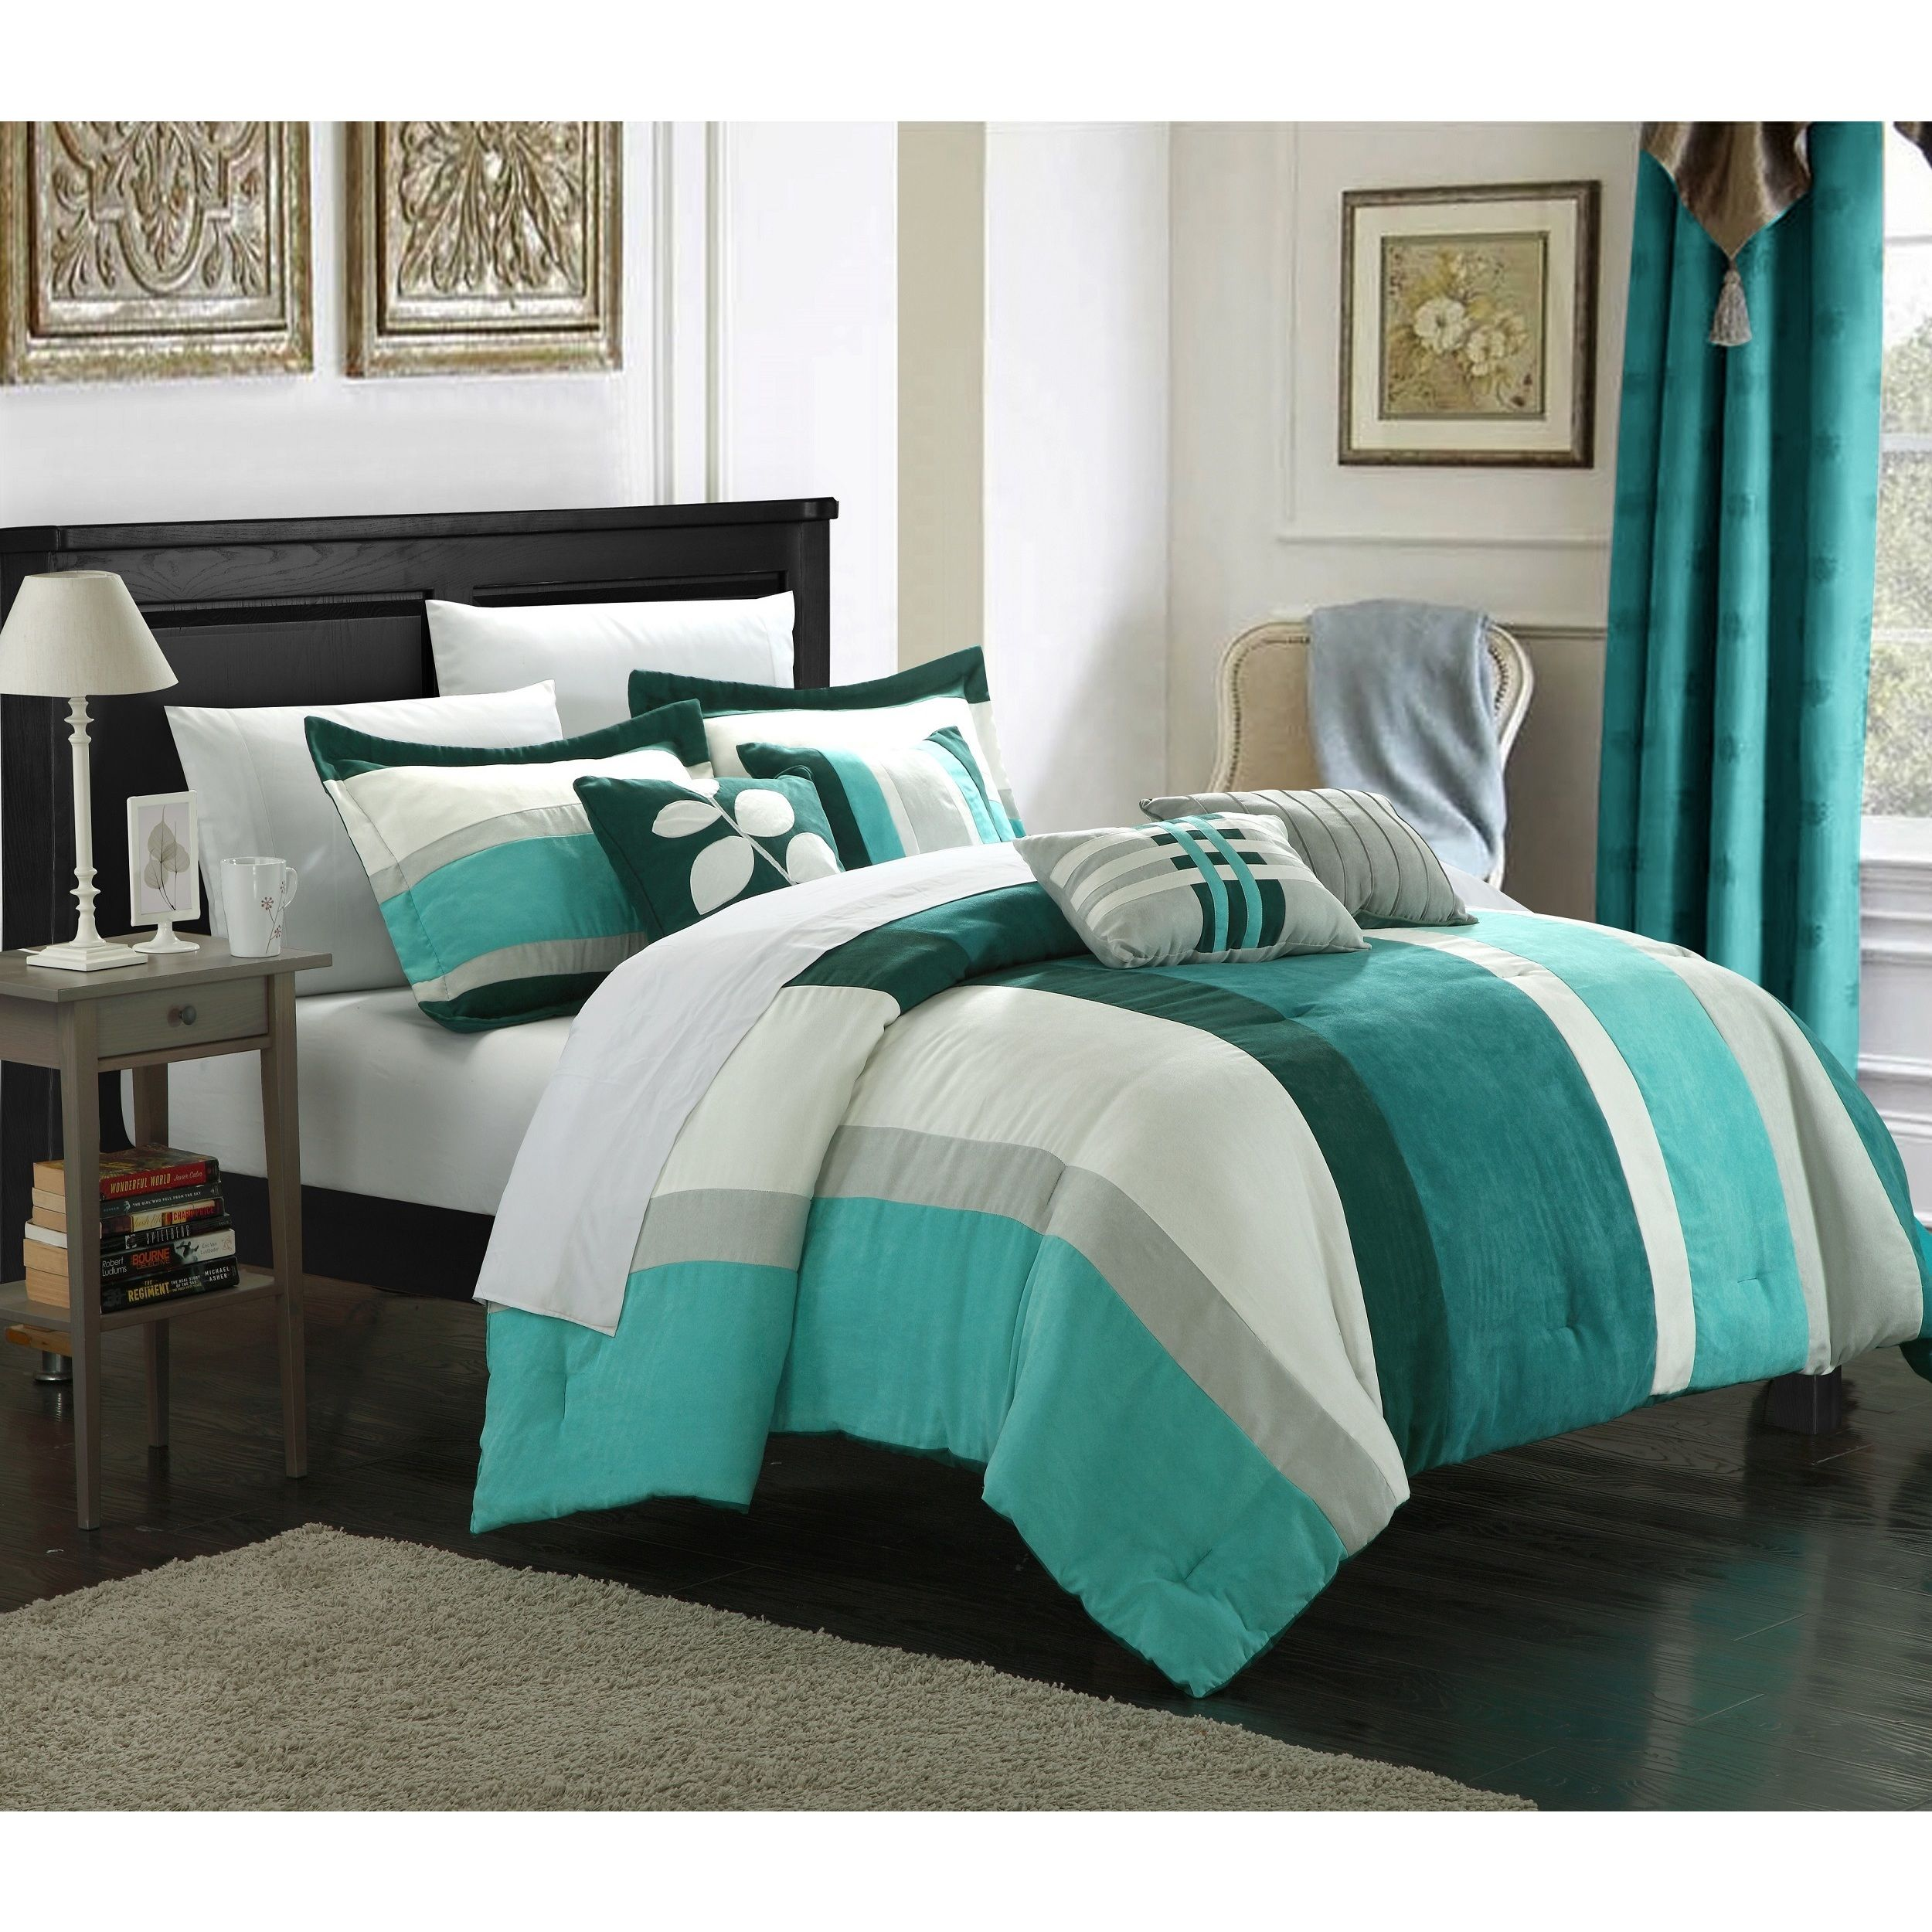 queen sets photo sensational striped comforter and inspirations bedding black white